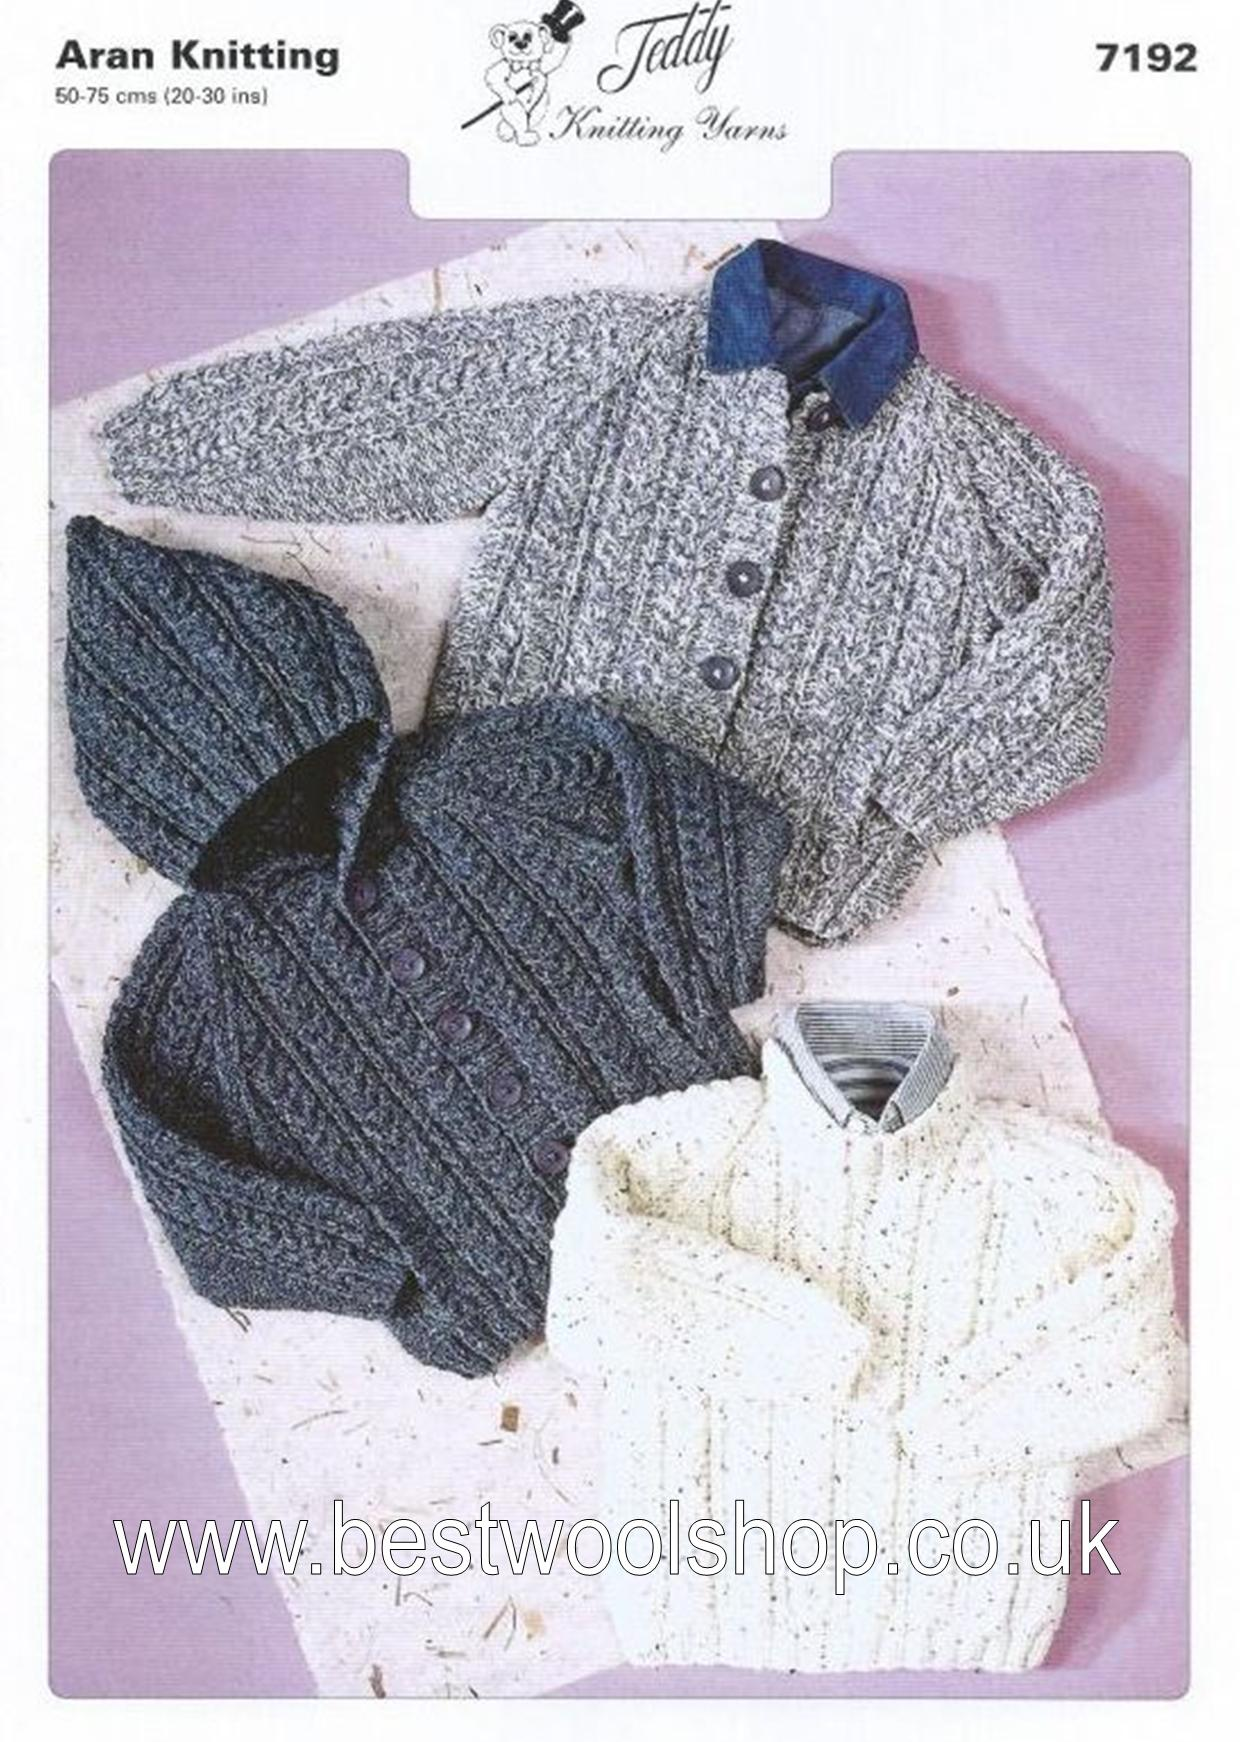 7192 - V & A ARAN CHILDRENS SWEATER & HOODED CARDIGAN KNITTING ...